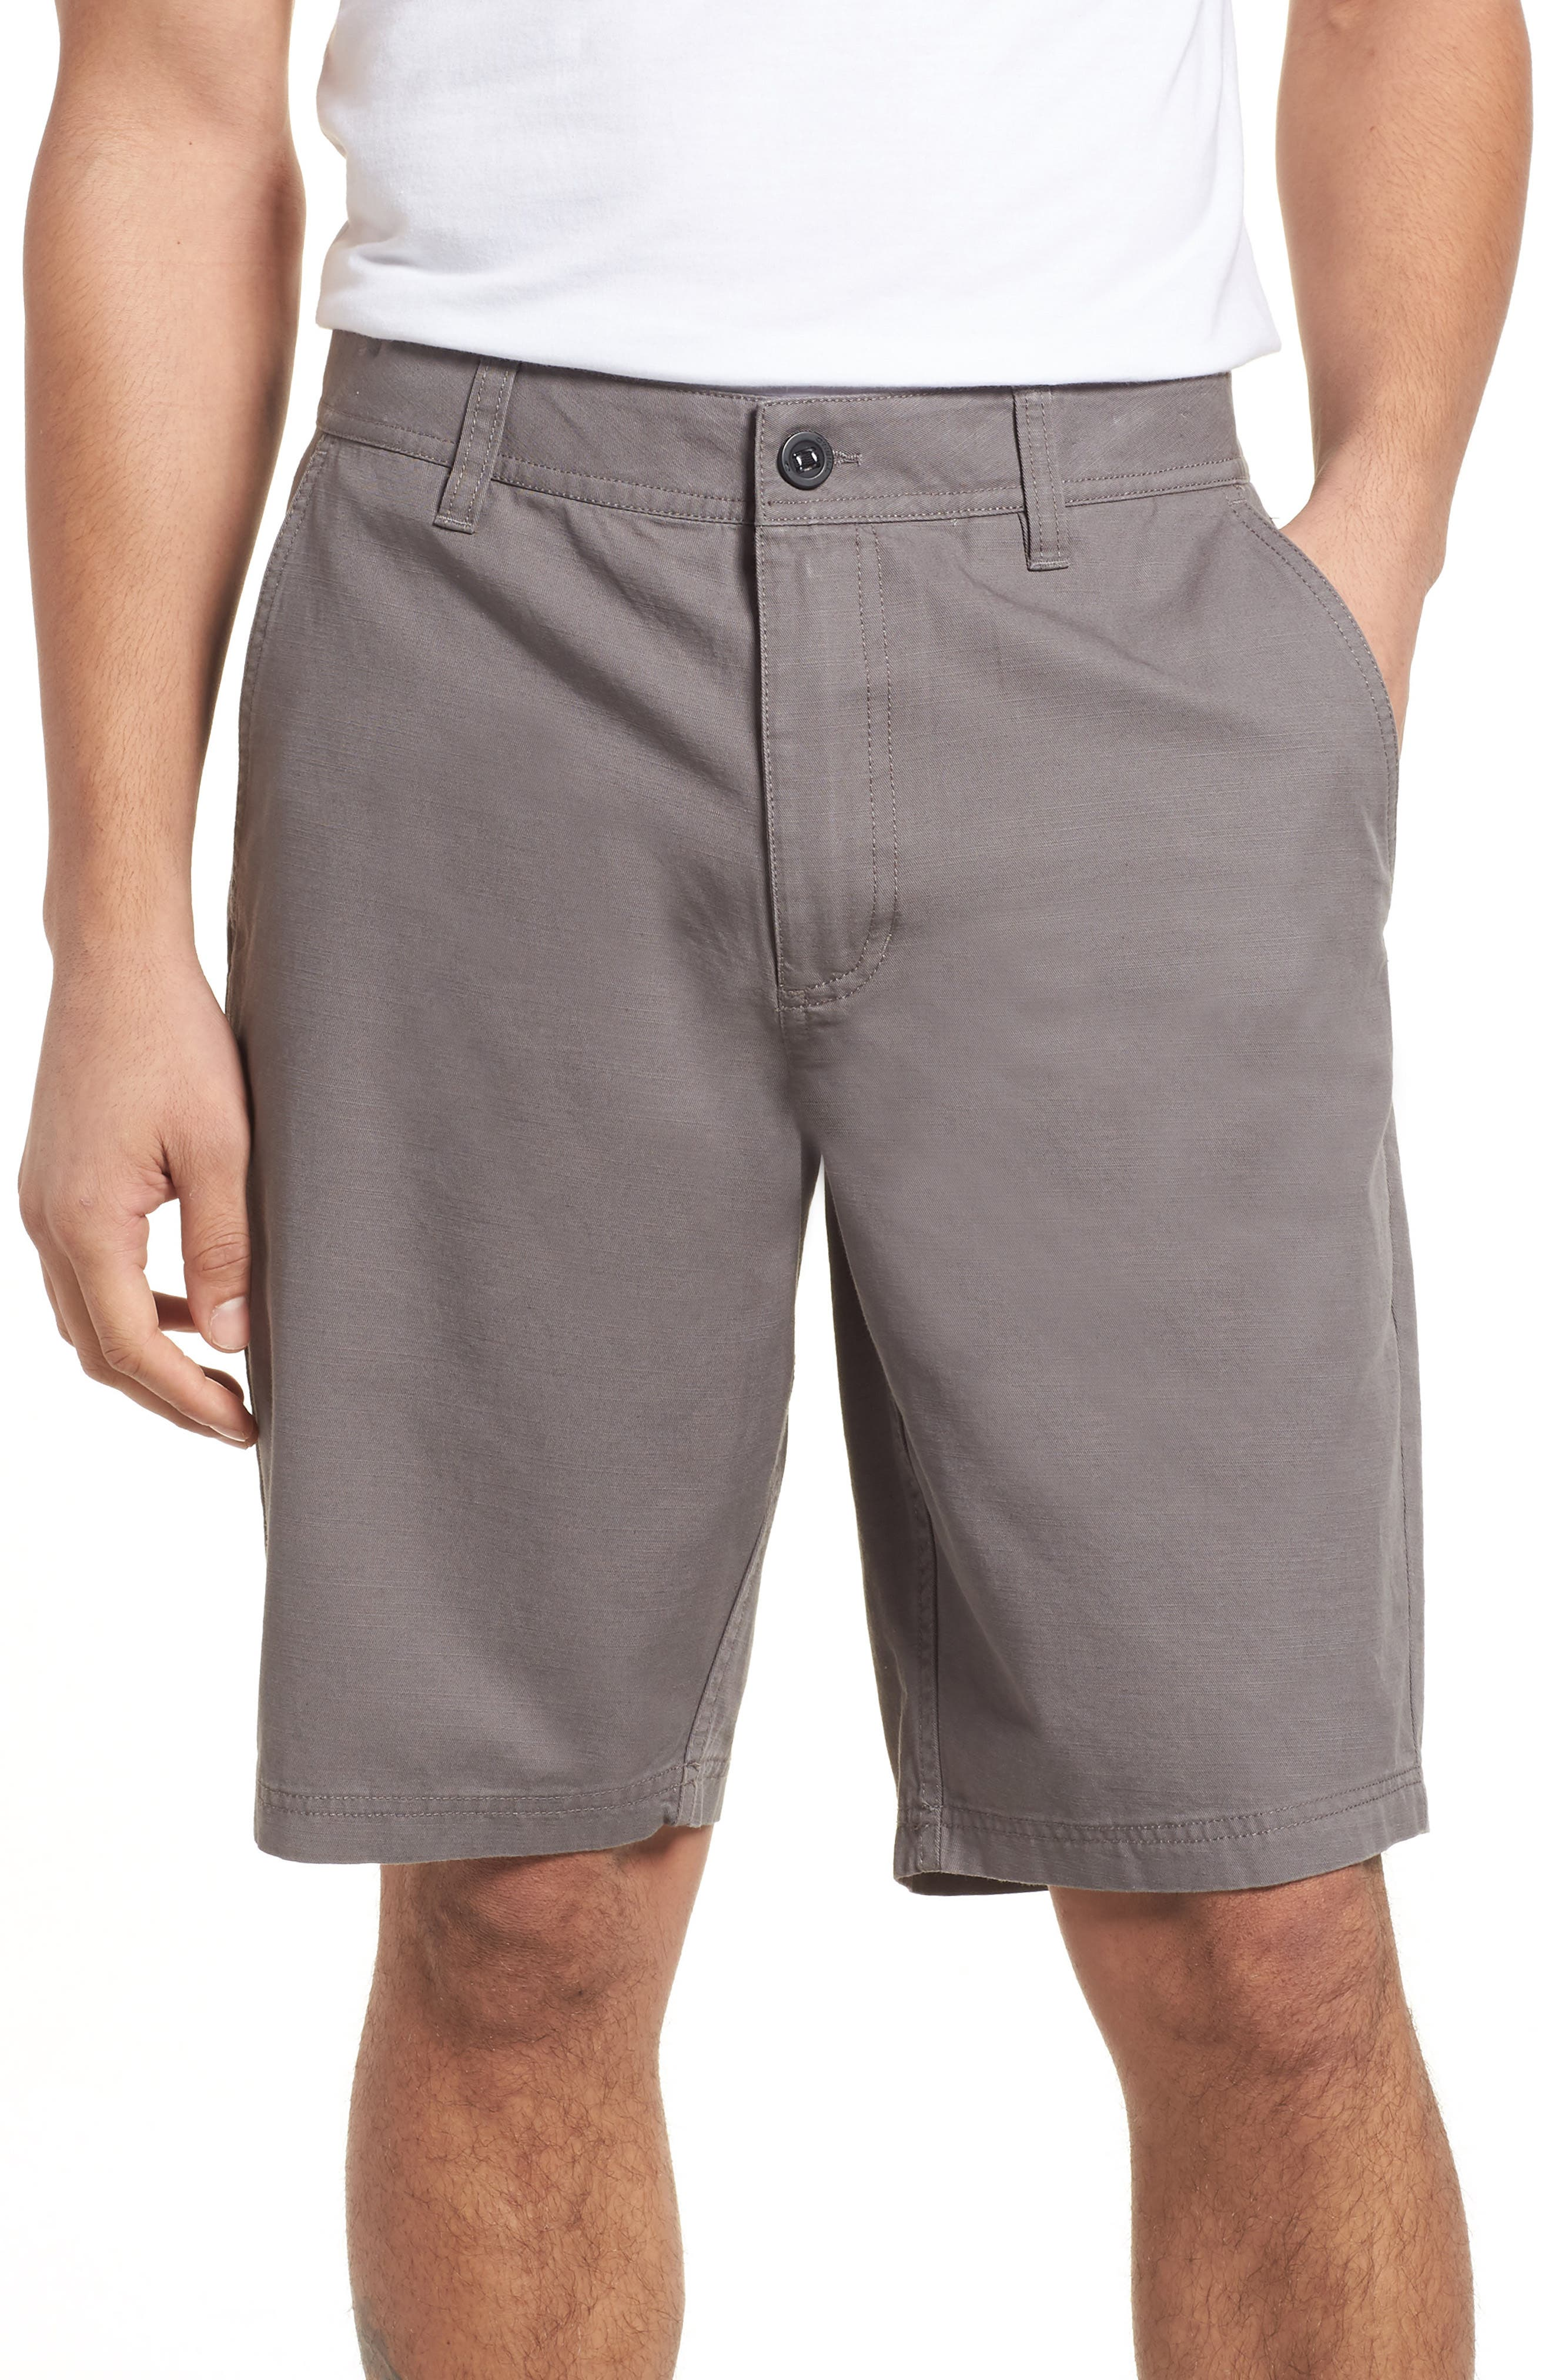 Jay Chino Shorts,                         Main,                         color, Grey